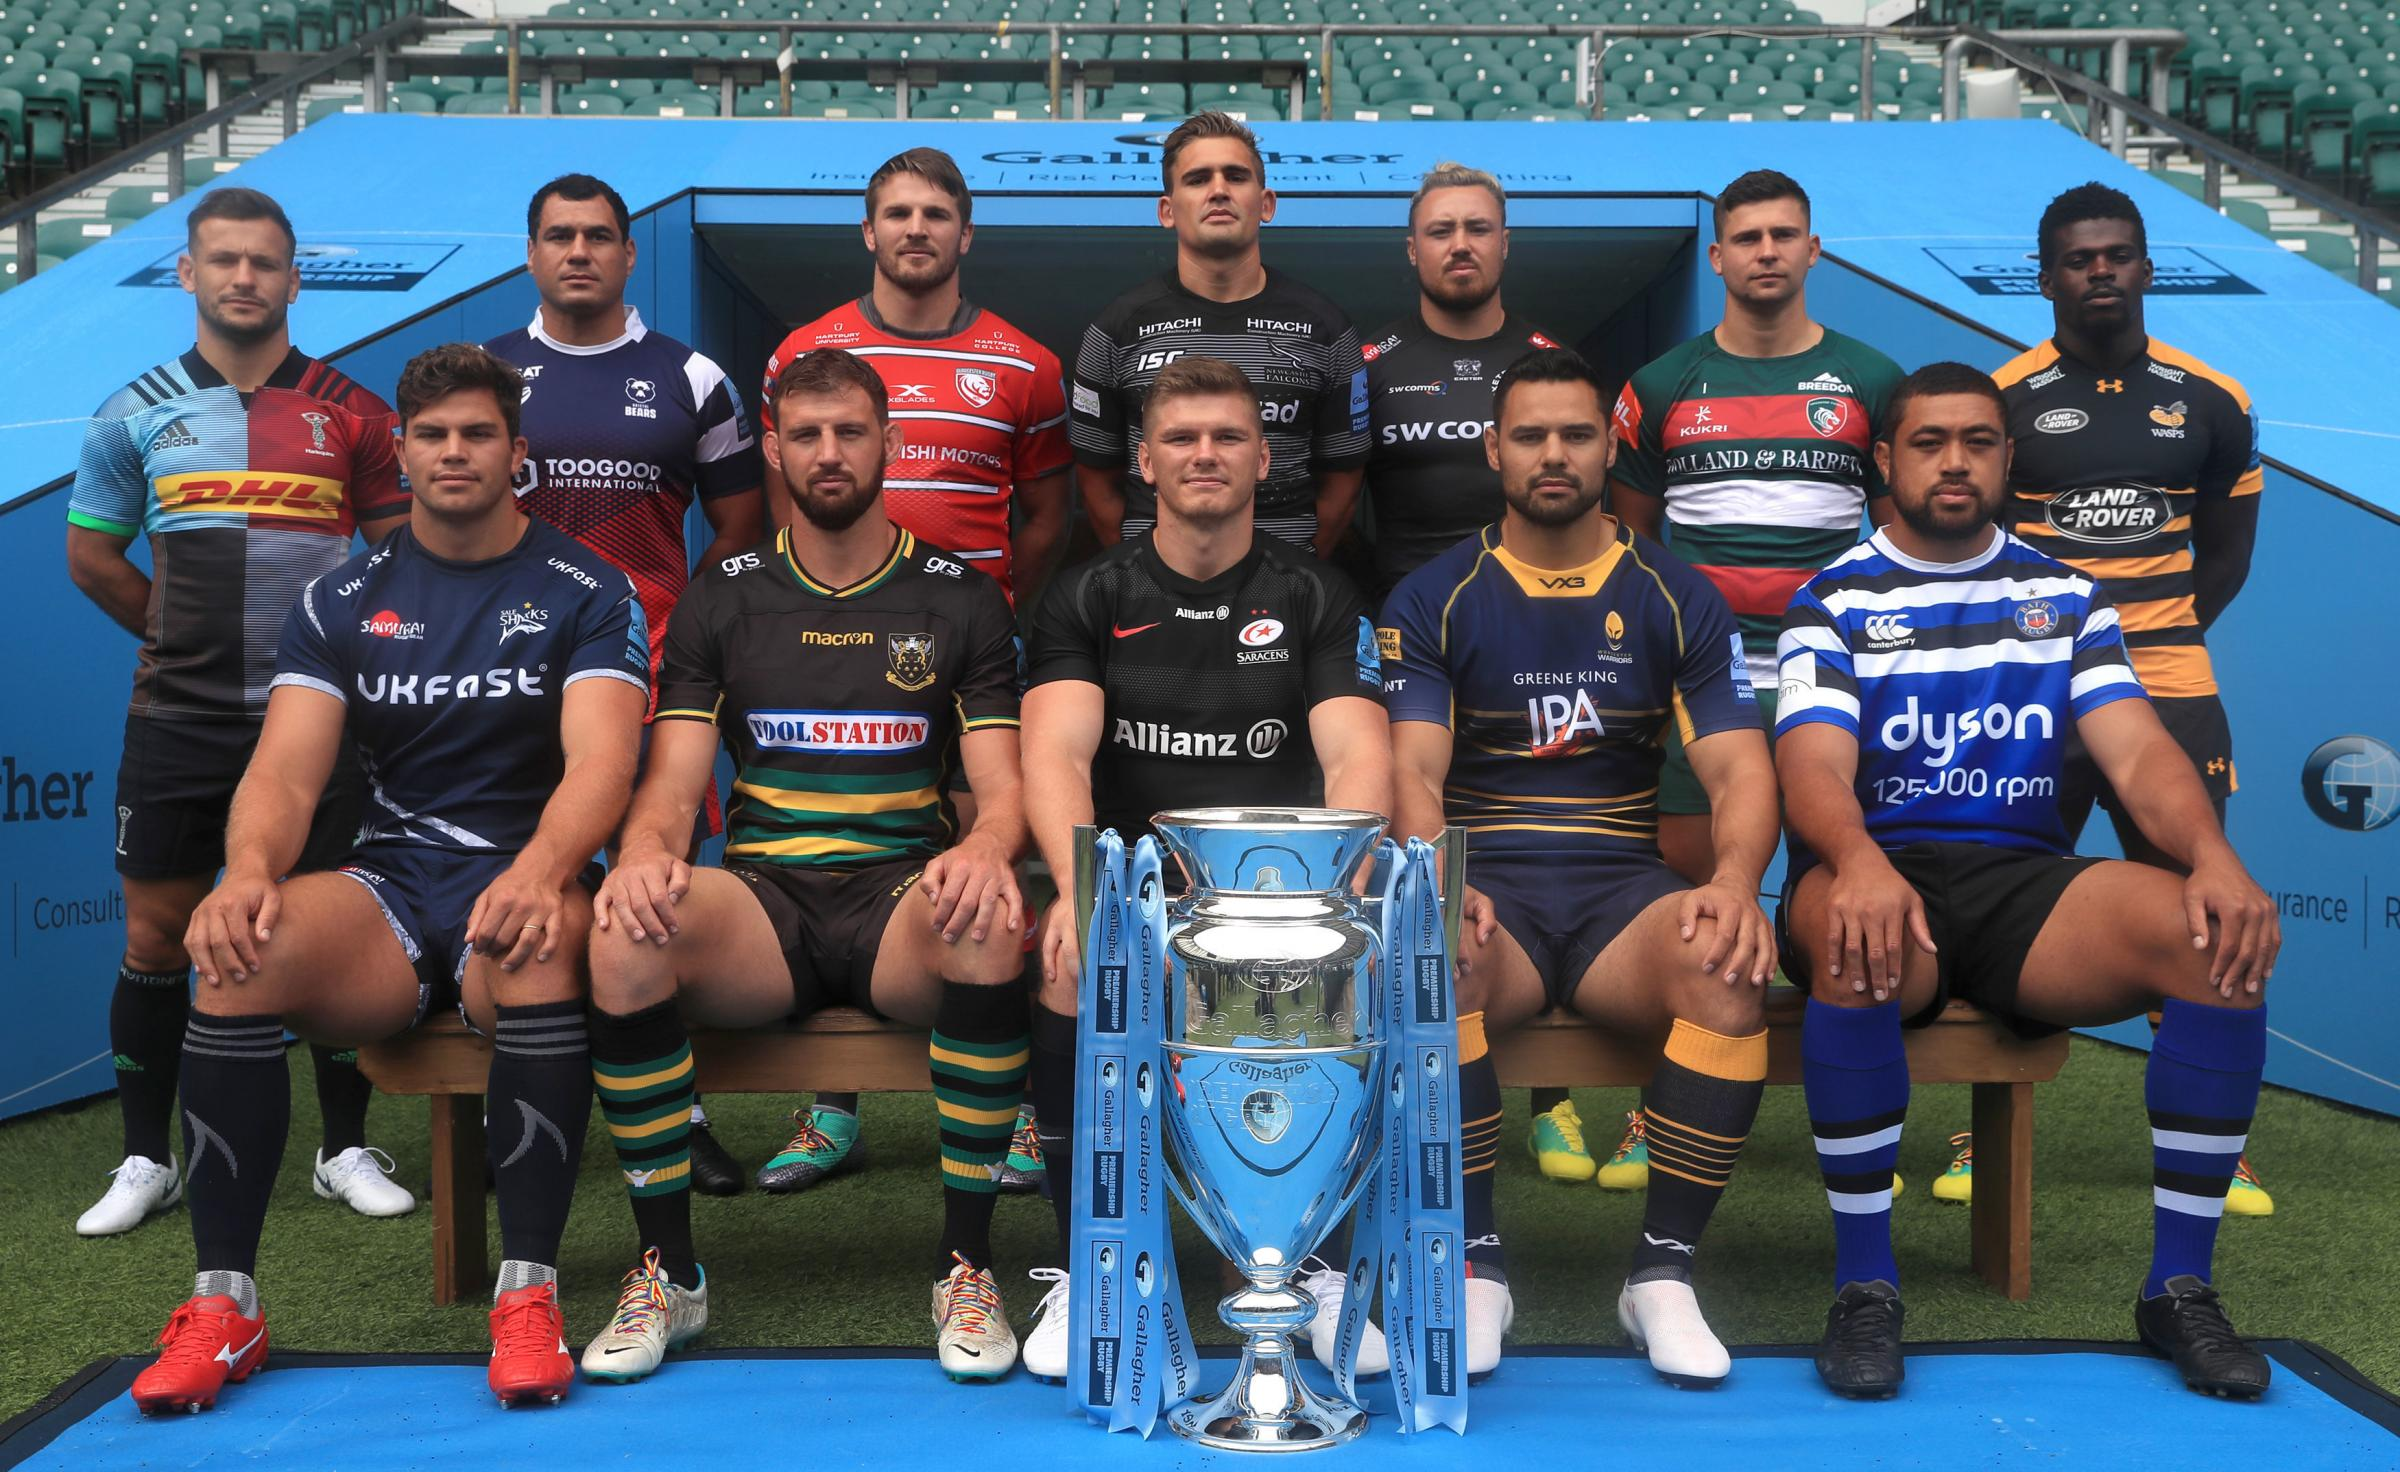 (back row left-right) Harlequins' Danny Care, Bristol Bears' George Smith, Gloucester Rugby's Jaco Kriele, Newcastle Falcon's Toby Flood, Exeter Chief's Jack Nowell, Leicester Tigers' Ben Youngs Wasps' Christian Wade (front row